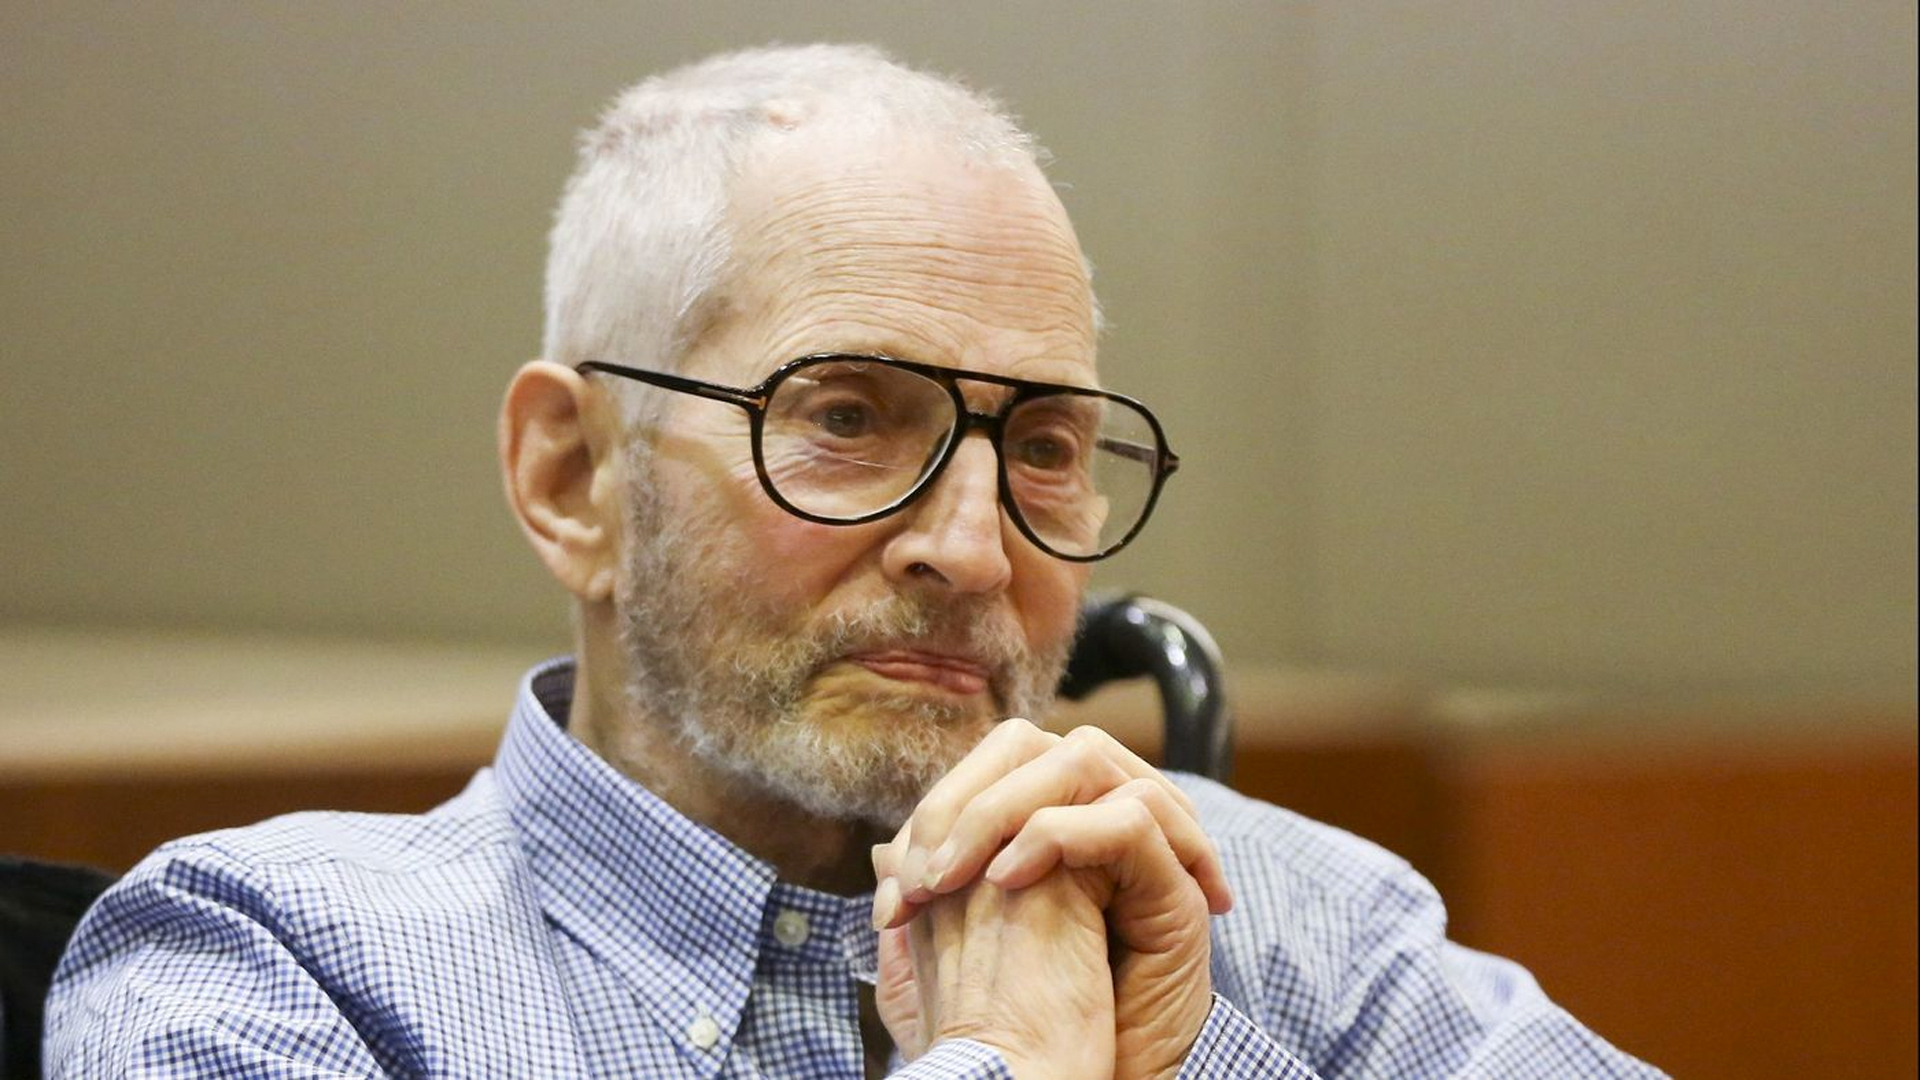 New York real estate scion Robert Durst, shown at an earlier hearing, is expected to return to court Monday for a preliminary hearing. (Credit: Mark Boster / Los Angeles Times)